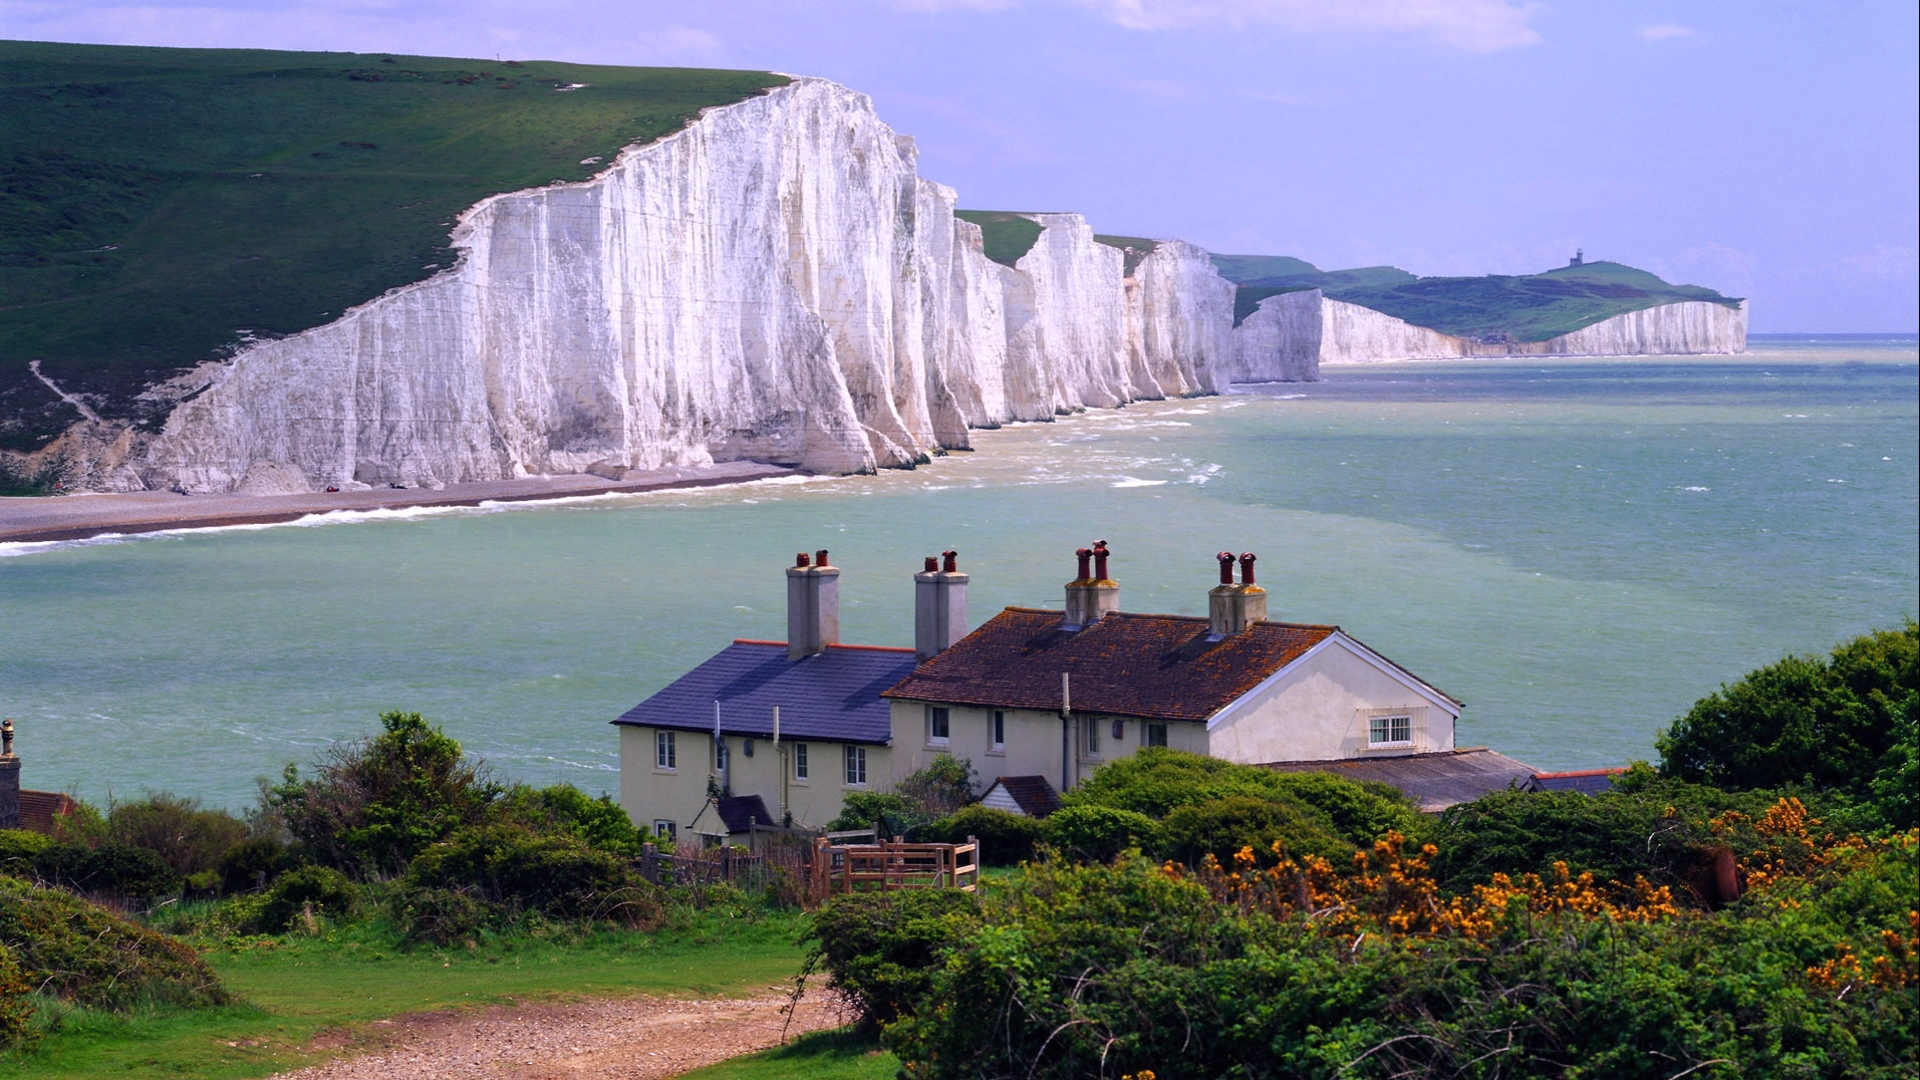 ffeeffeafcace-cottages-england-white-cliffs-of-dover-wallpaper-wp380552